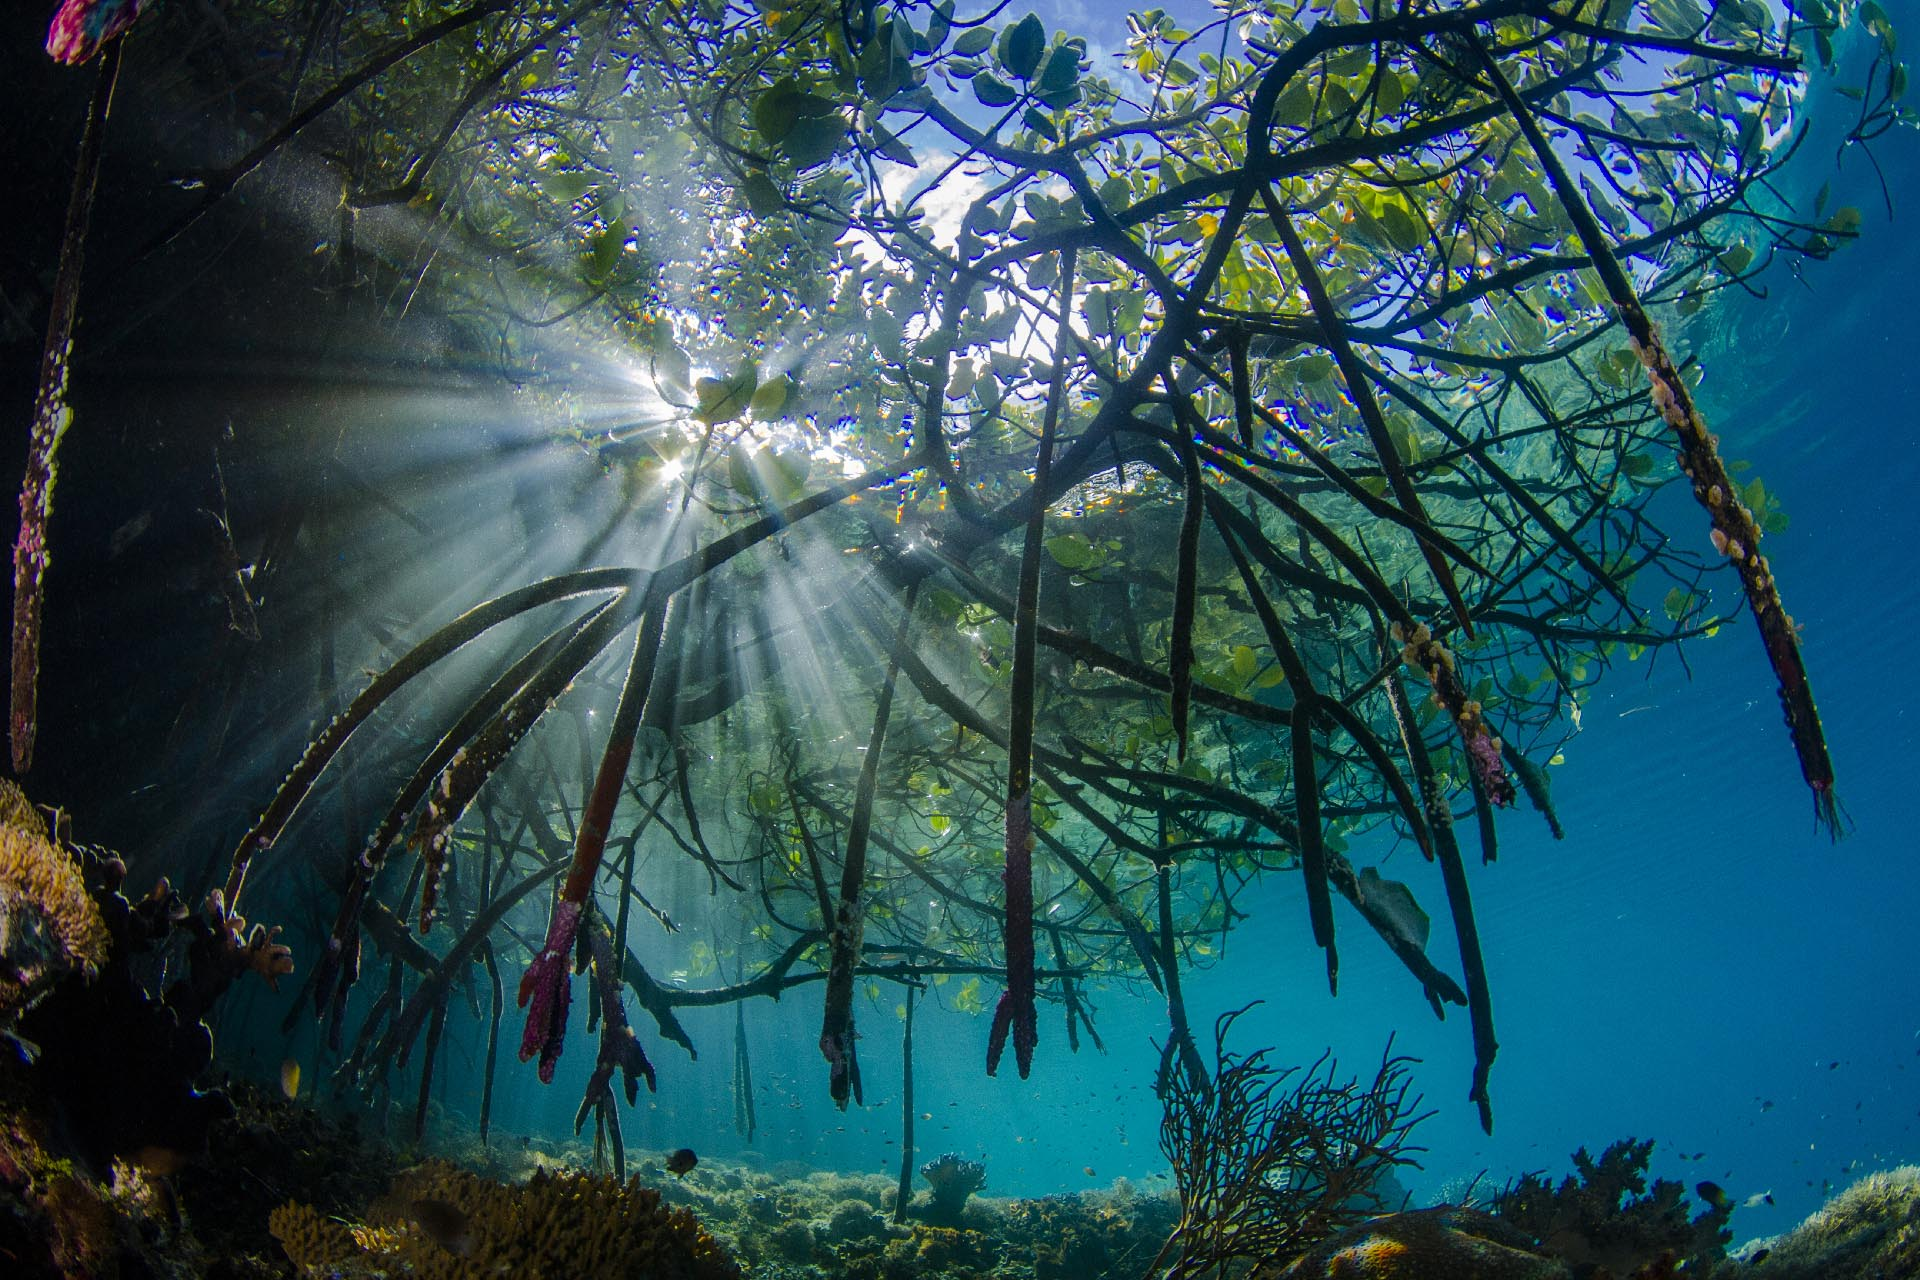 Sun burst of coral reef and mangroves